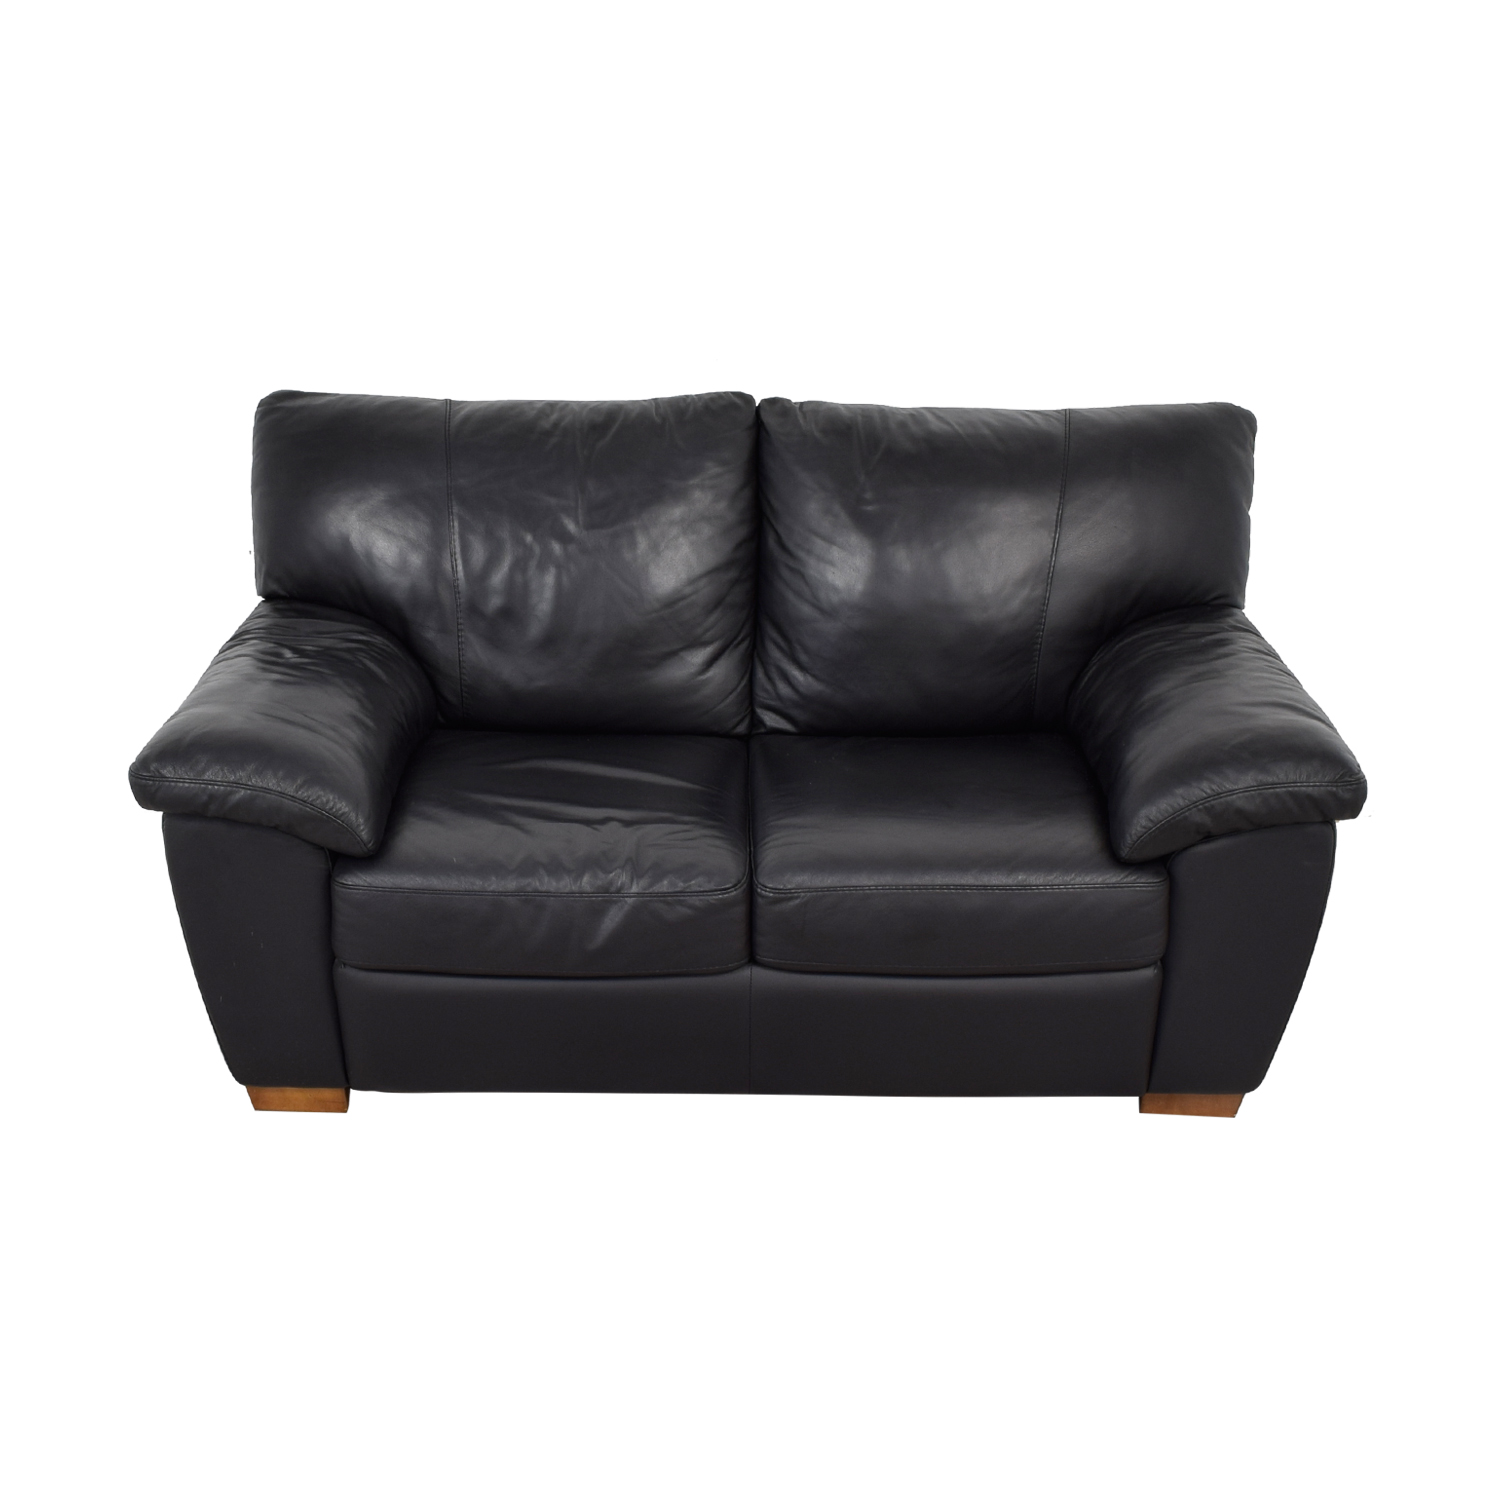 IKEA IKEA Vreta Black Leather Loveseat on sale